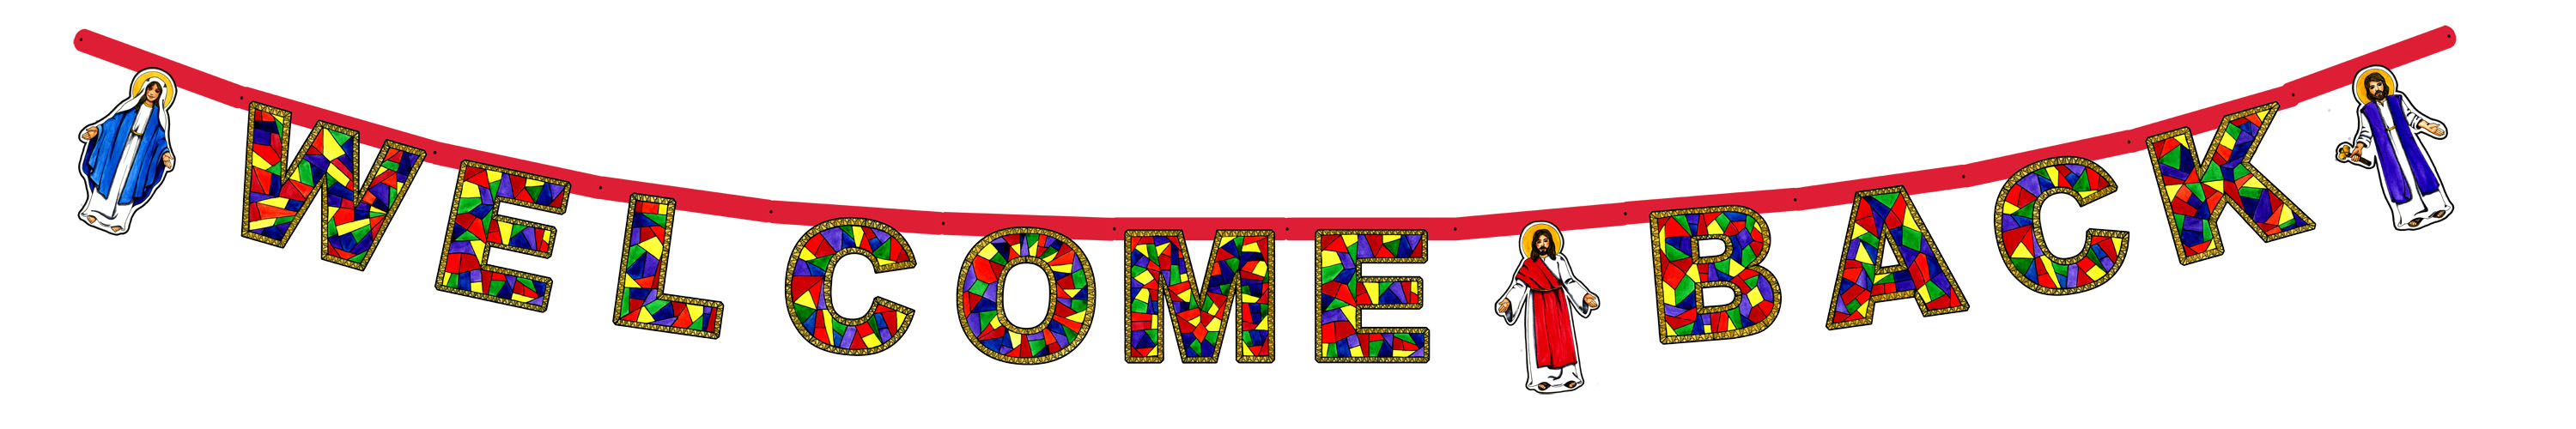 Welcome back clipart free download clip art on